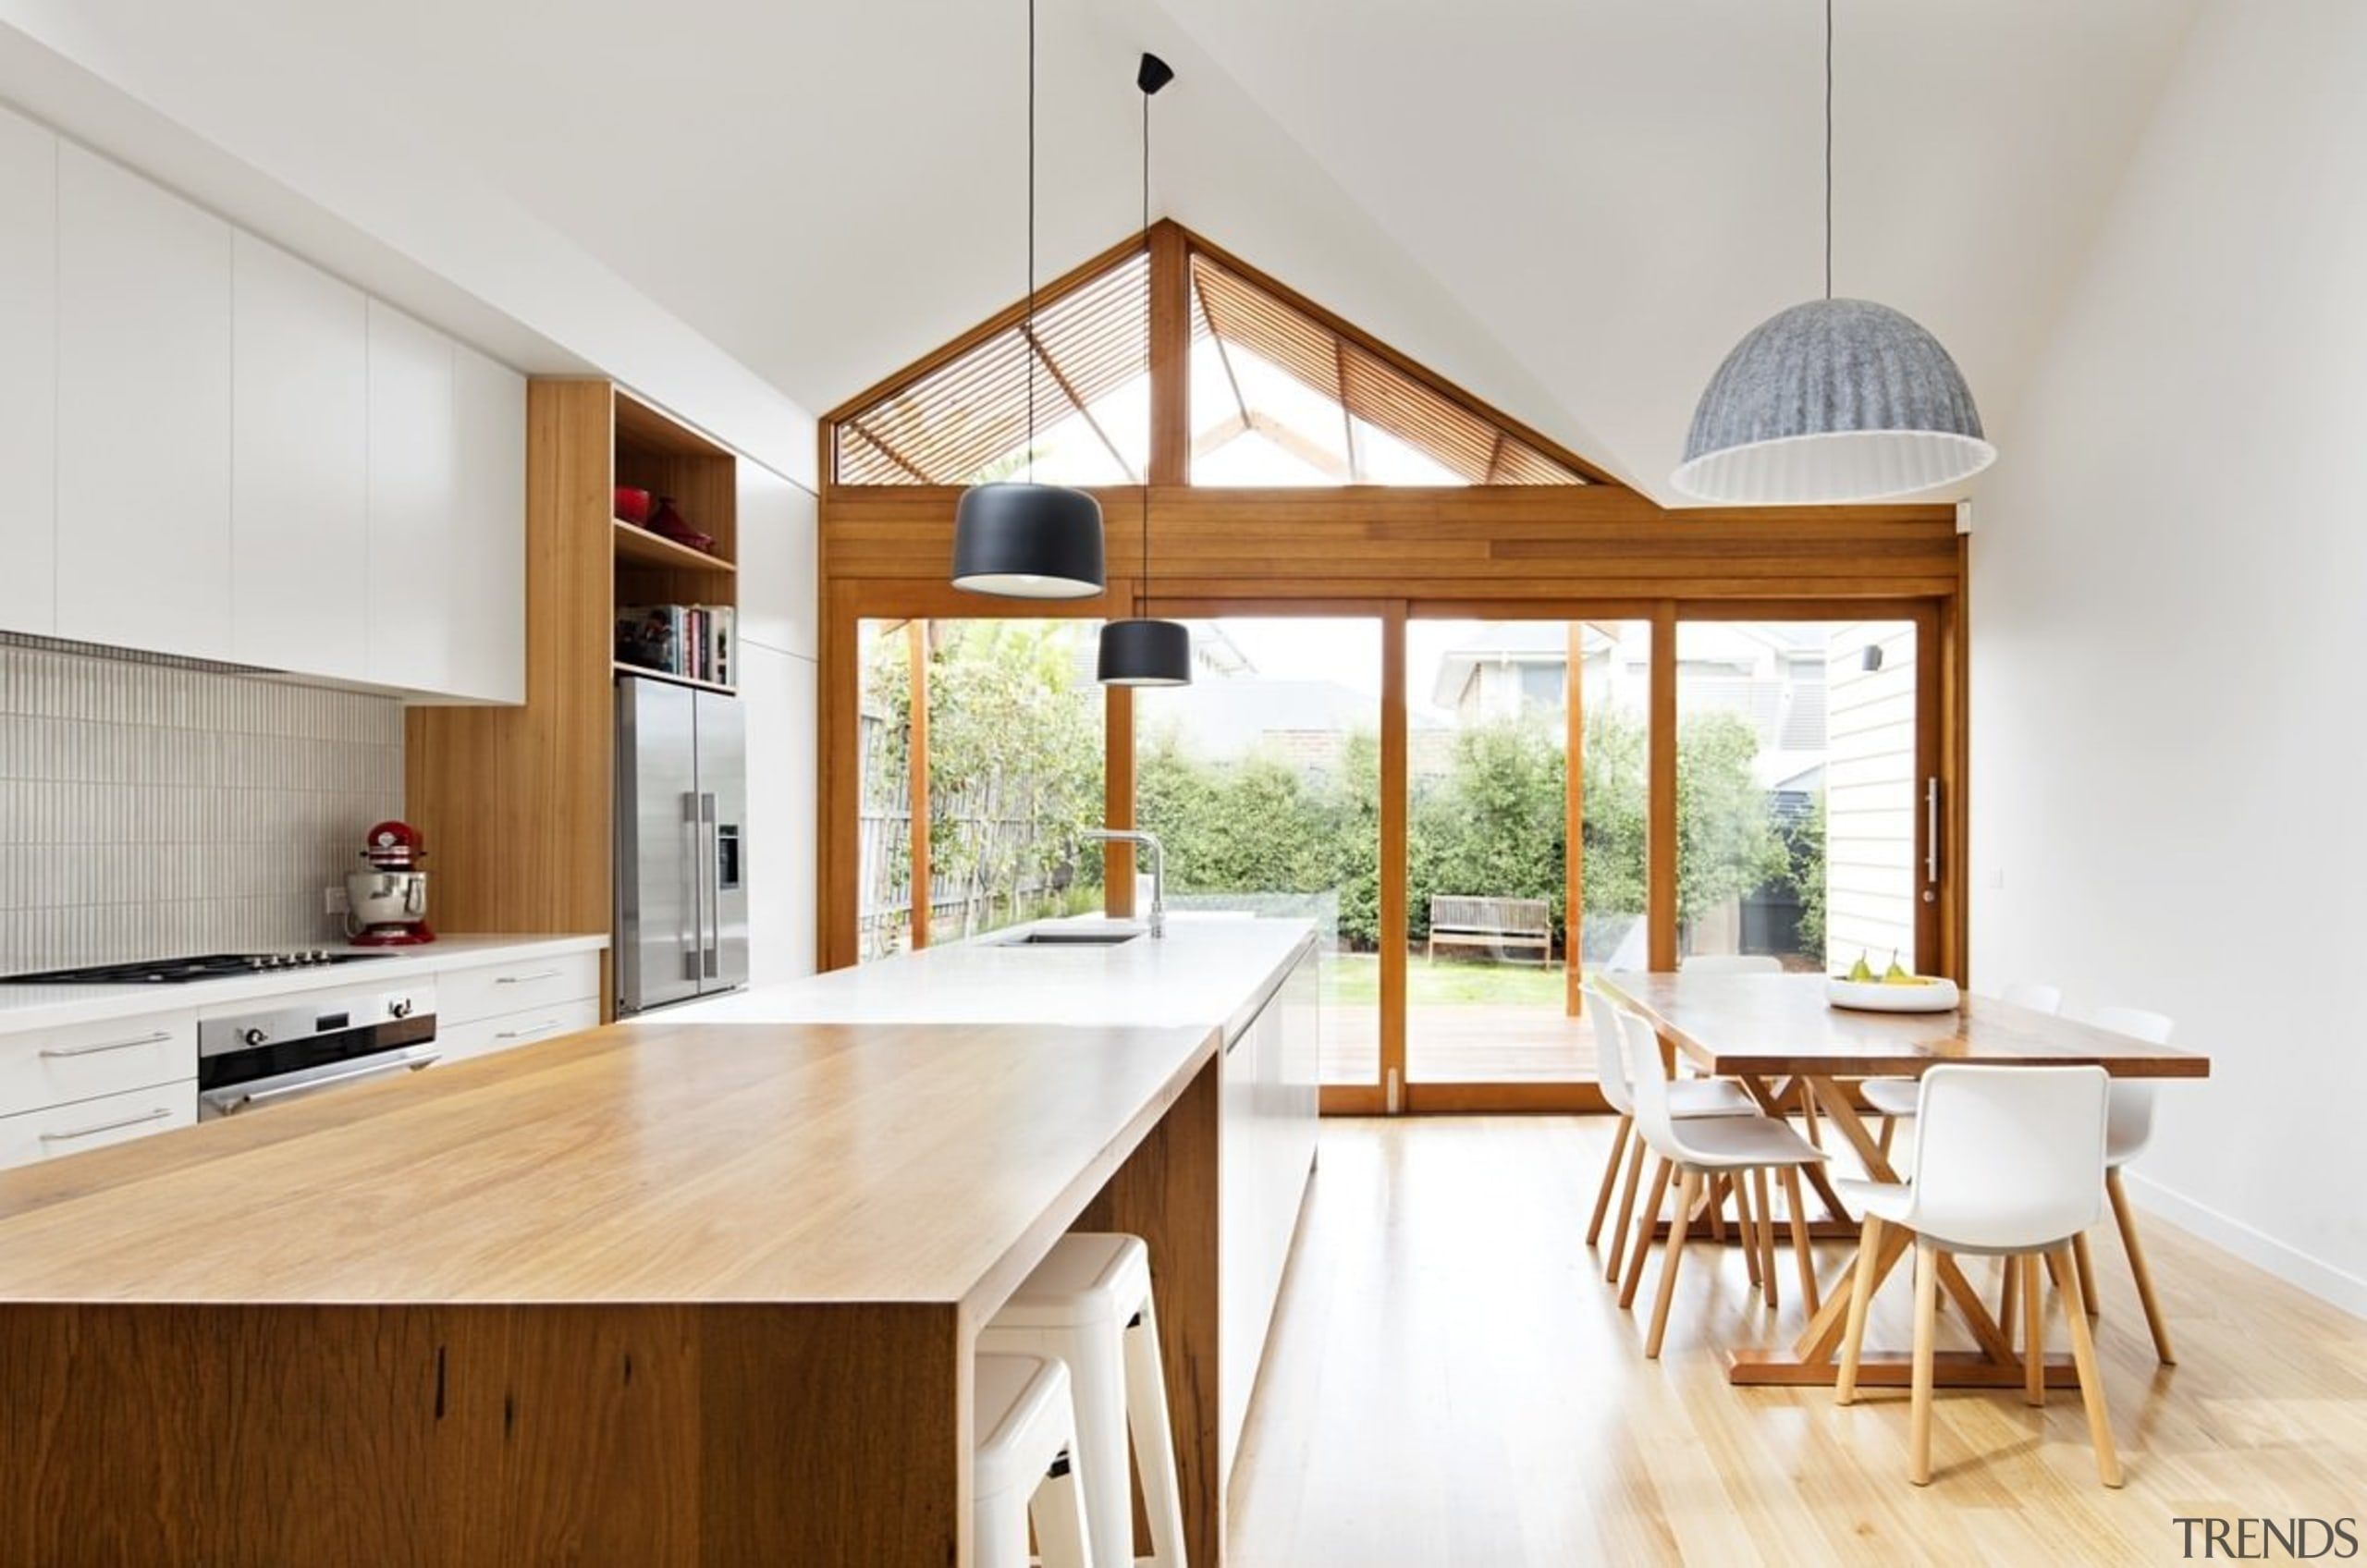 The island features a dedicated wood bar section architecture, house, interior design, real estate, table, white